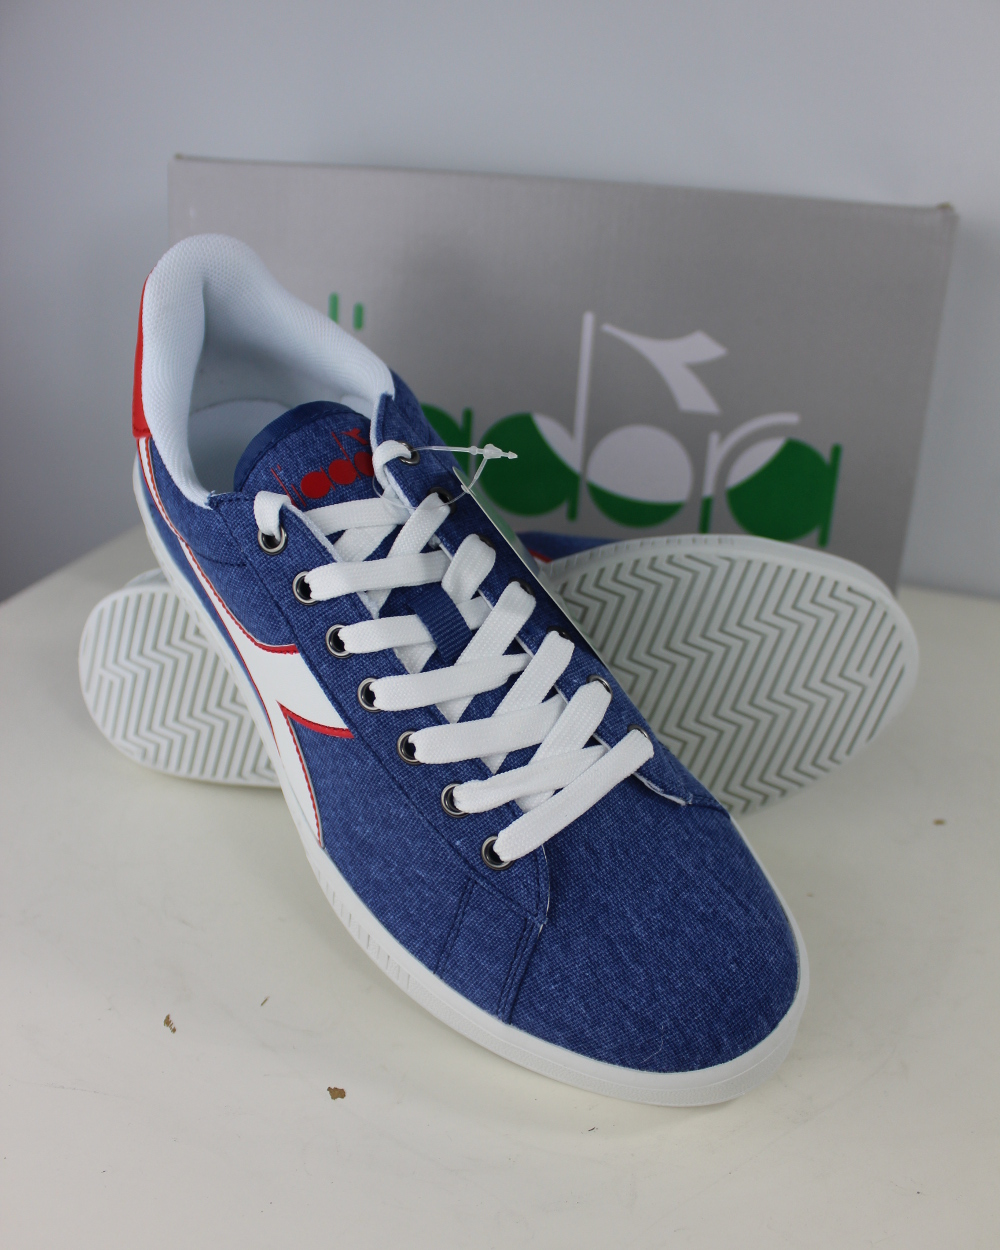 Diadora Scarpe Sneakers Ginnastica Tennis LifeStyle Blu Game Canvas ... 48ef9c80988